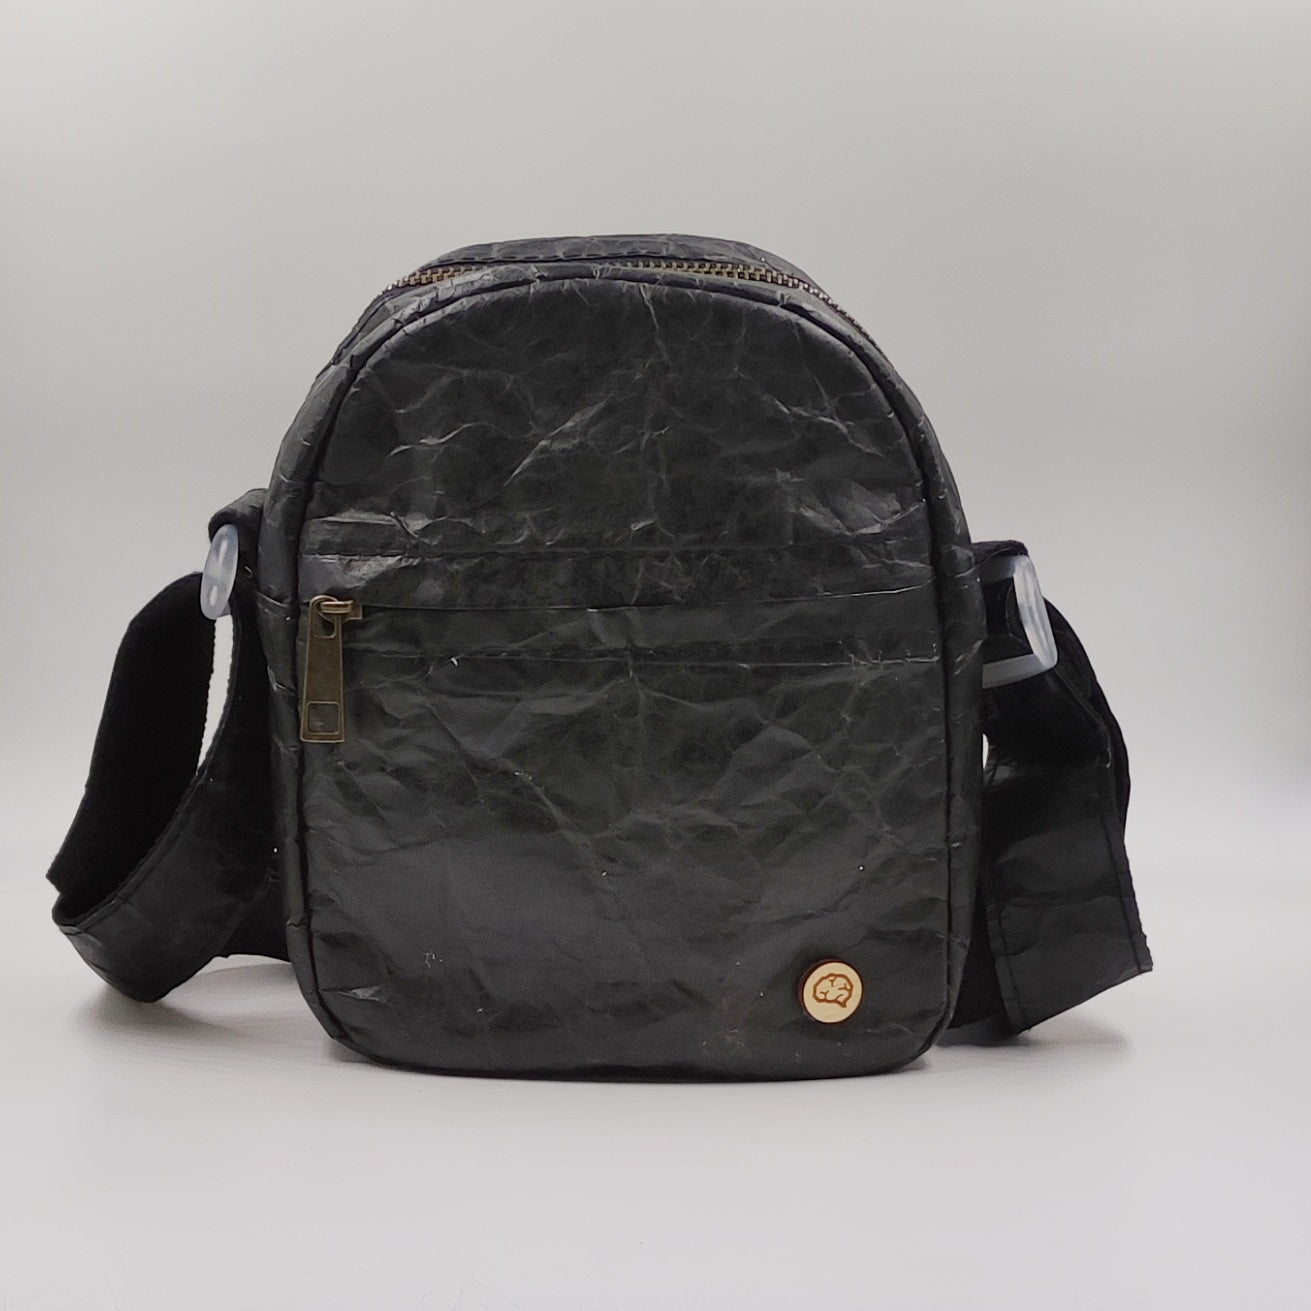 BLACK CROSSBODY PAPER-BAG